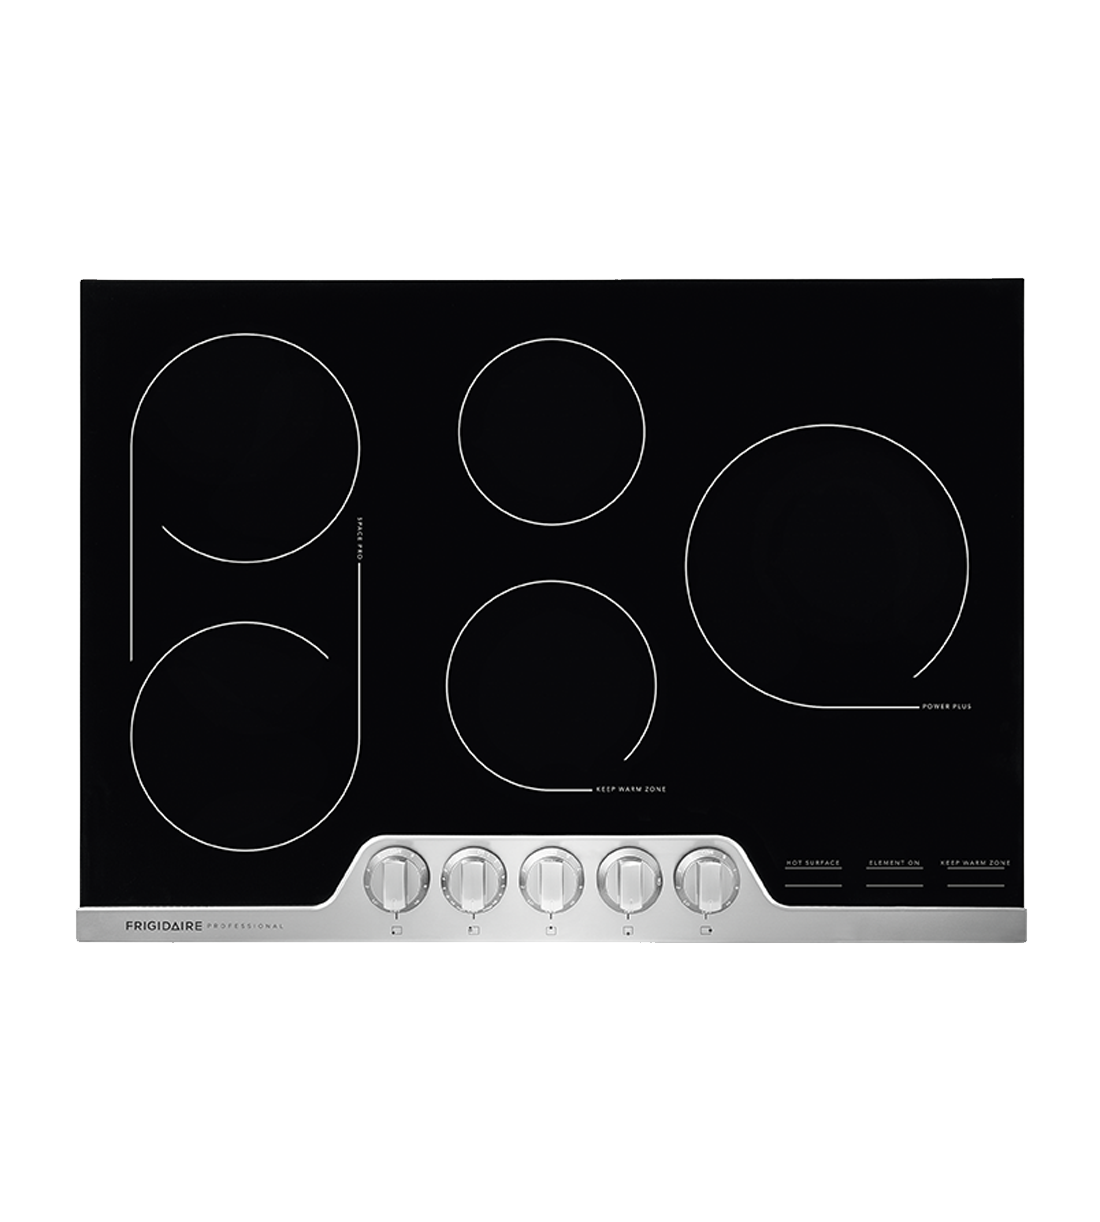 Frigidaire Professional Cooktop in Stainless Steel color showcased by Corbeil Electro Store